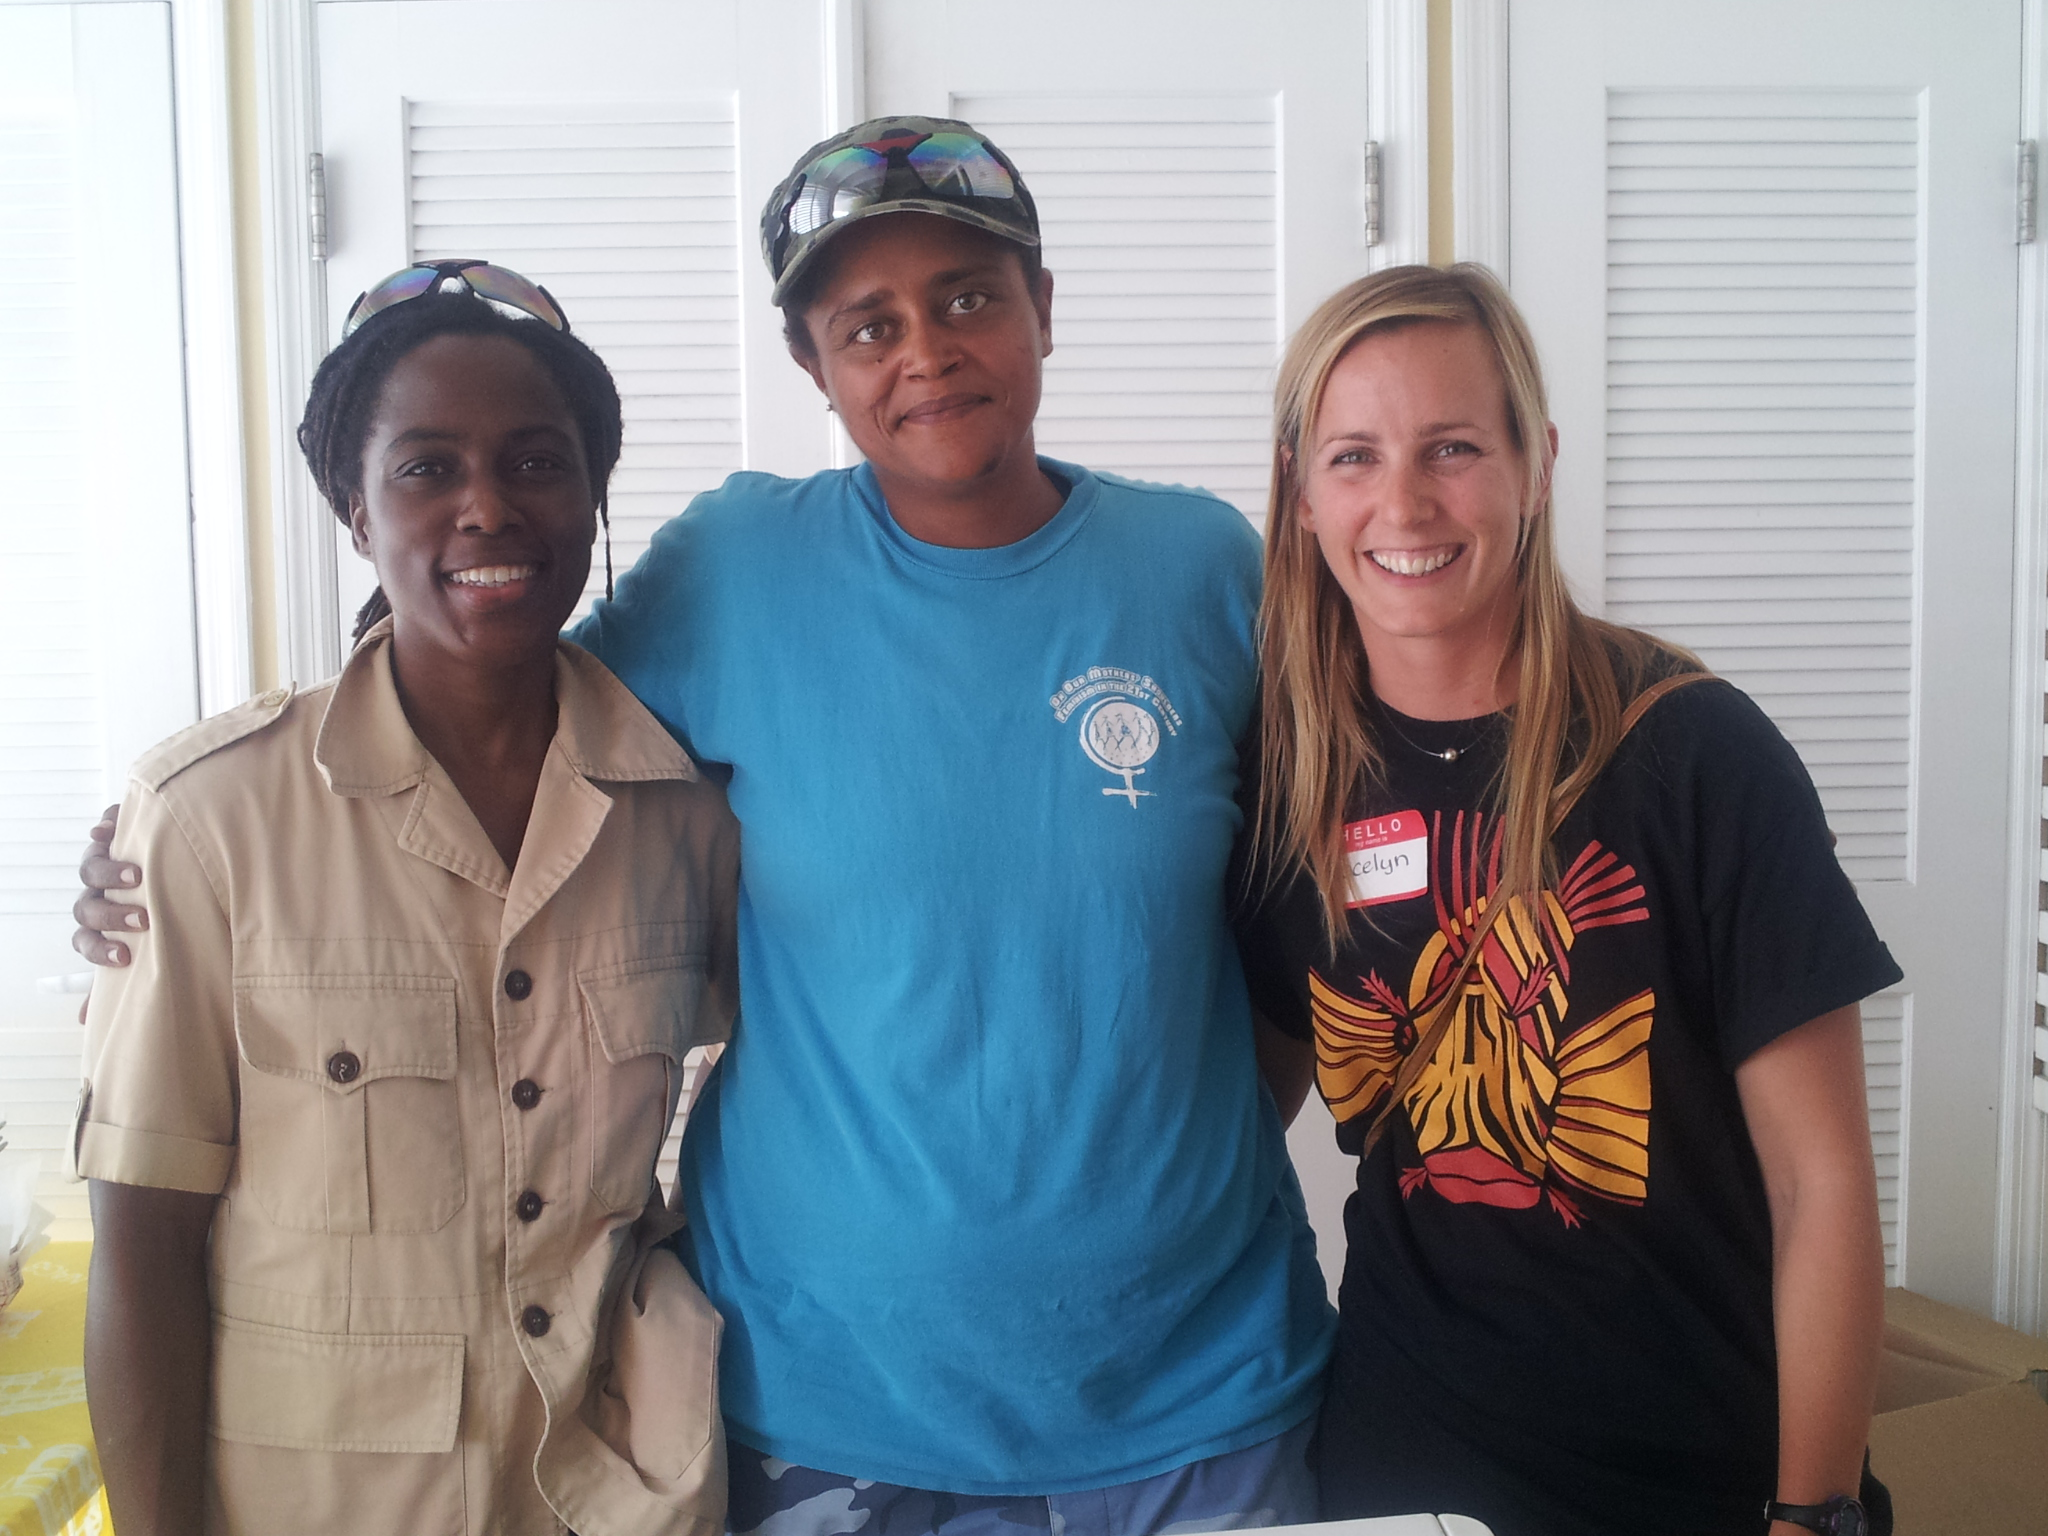 Dr. Curtis-Quick got to meet Erin and Tina from Seasonal Sunshine Bahamas, an organization that currently buys and sells lionfish in Nassau.